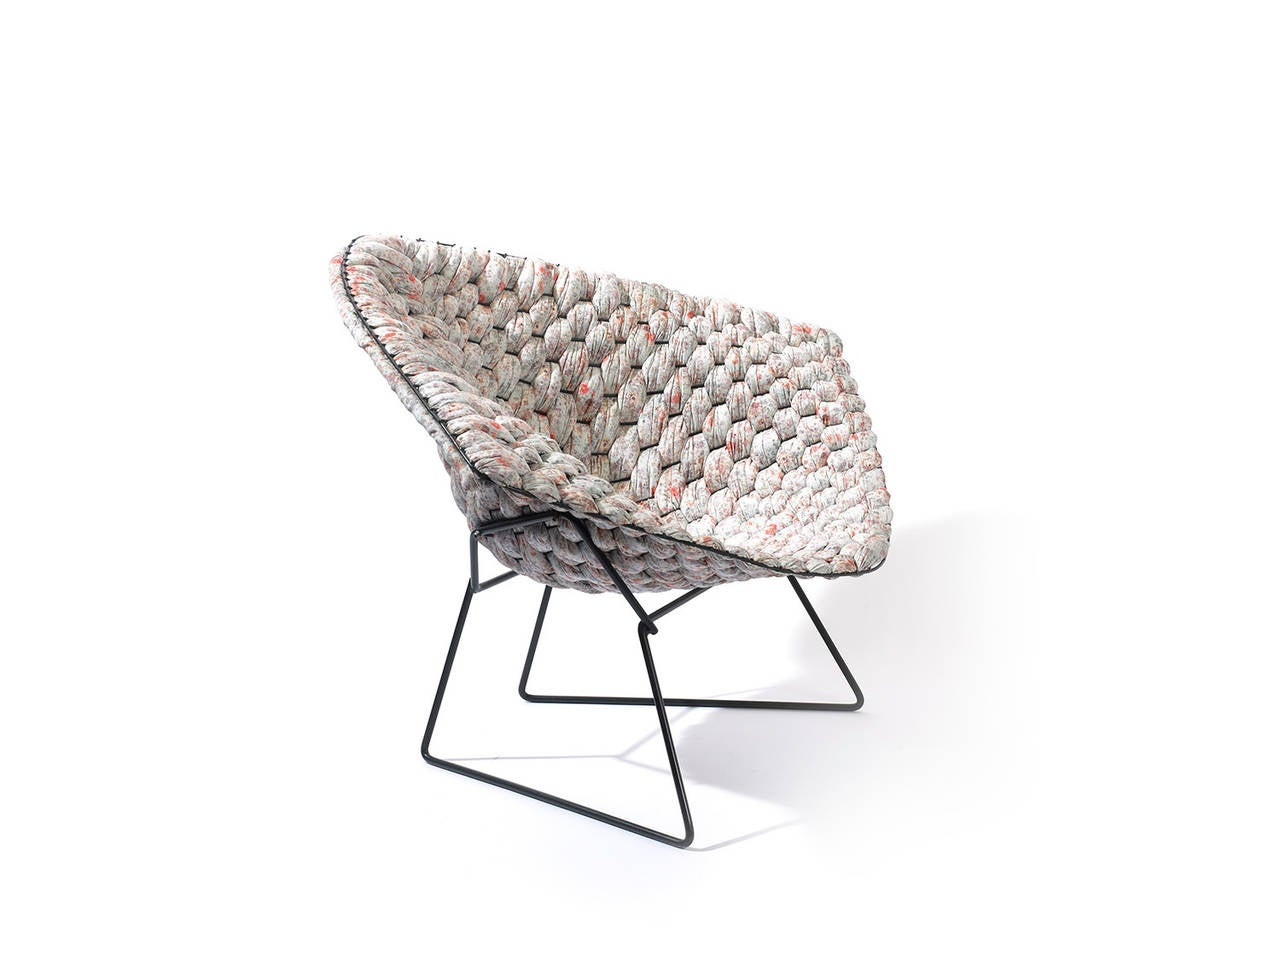 Bertoia diamond chair dimensions - Original Bertoia Diamond Chair Revisited By Cl Ment Brazille 2